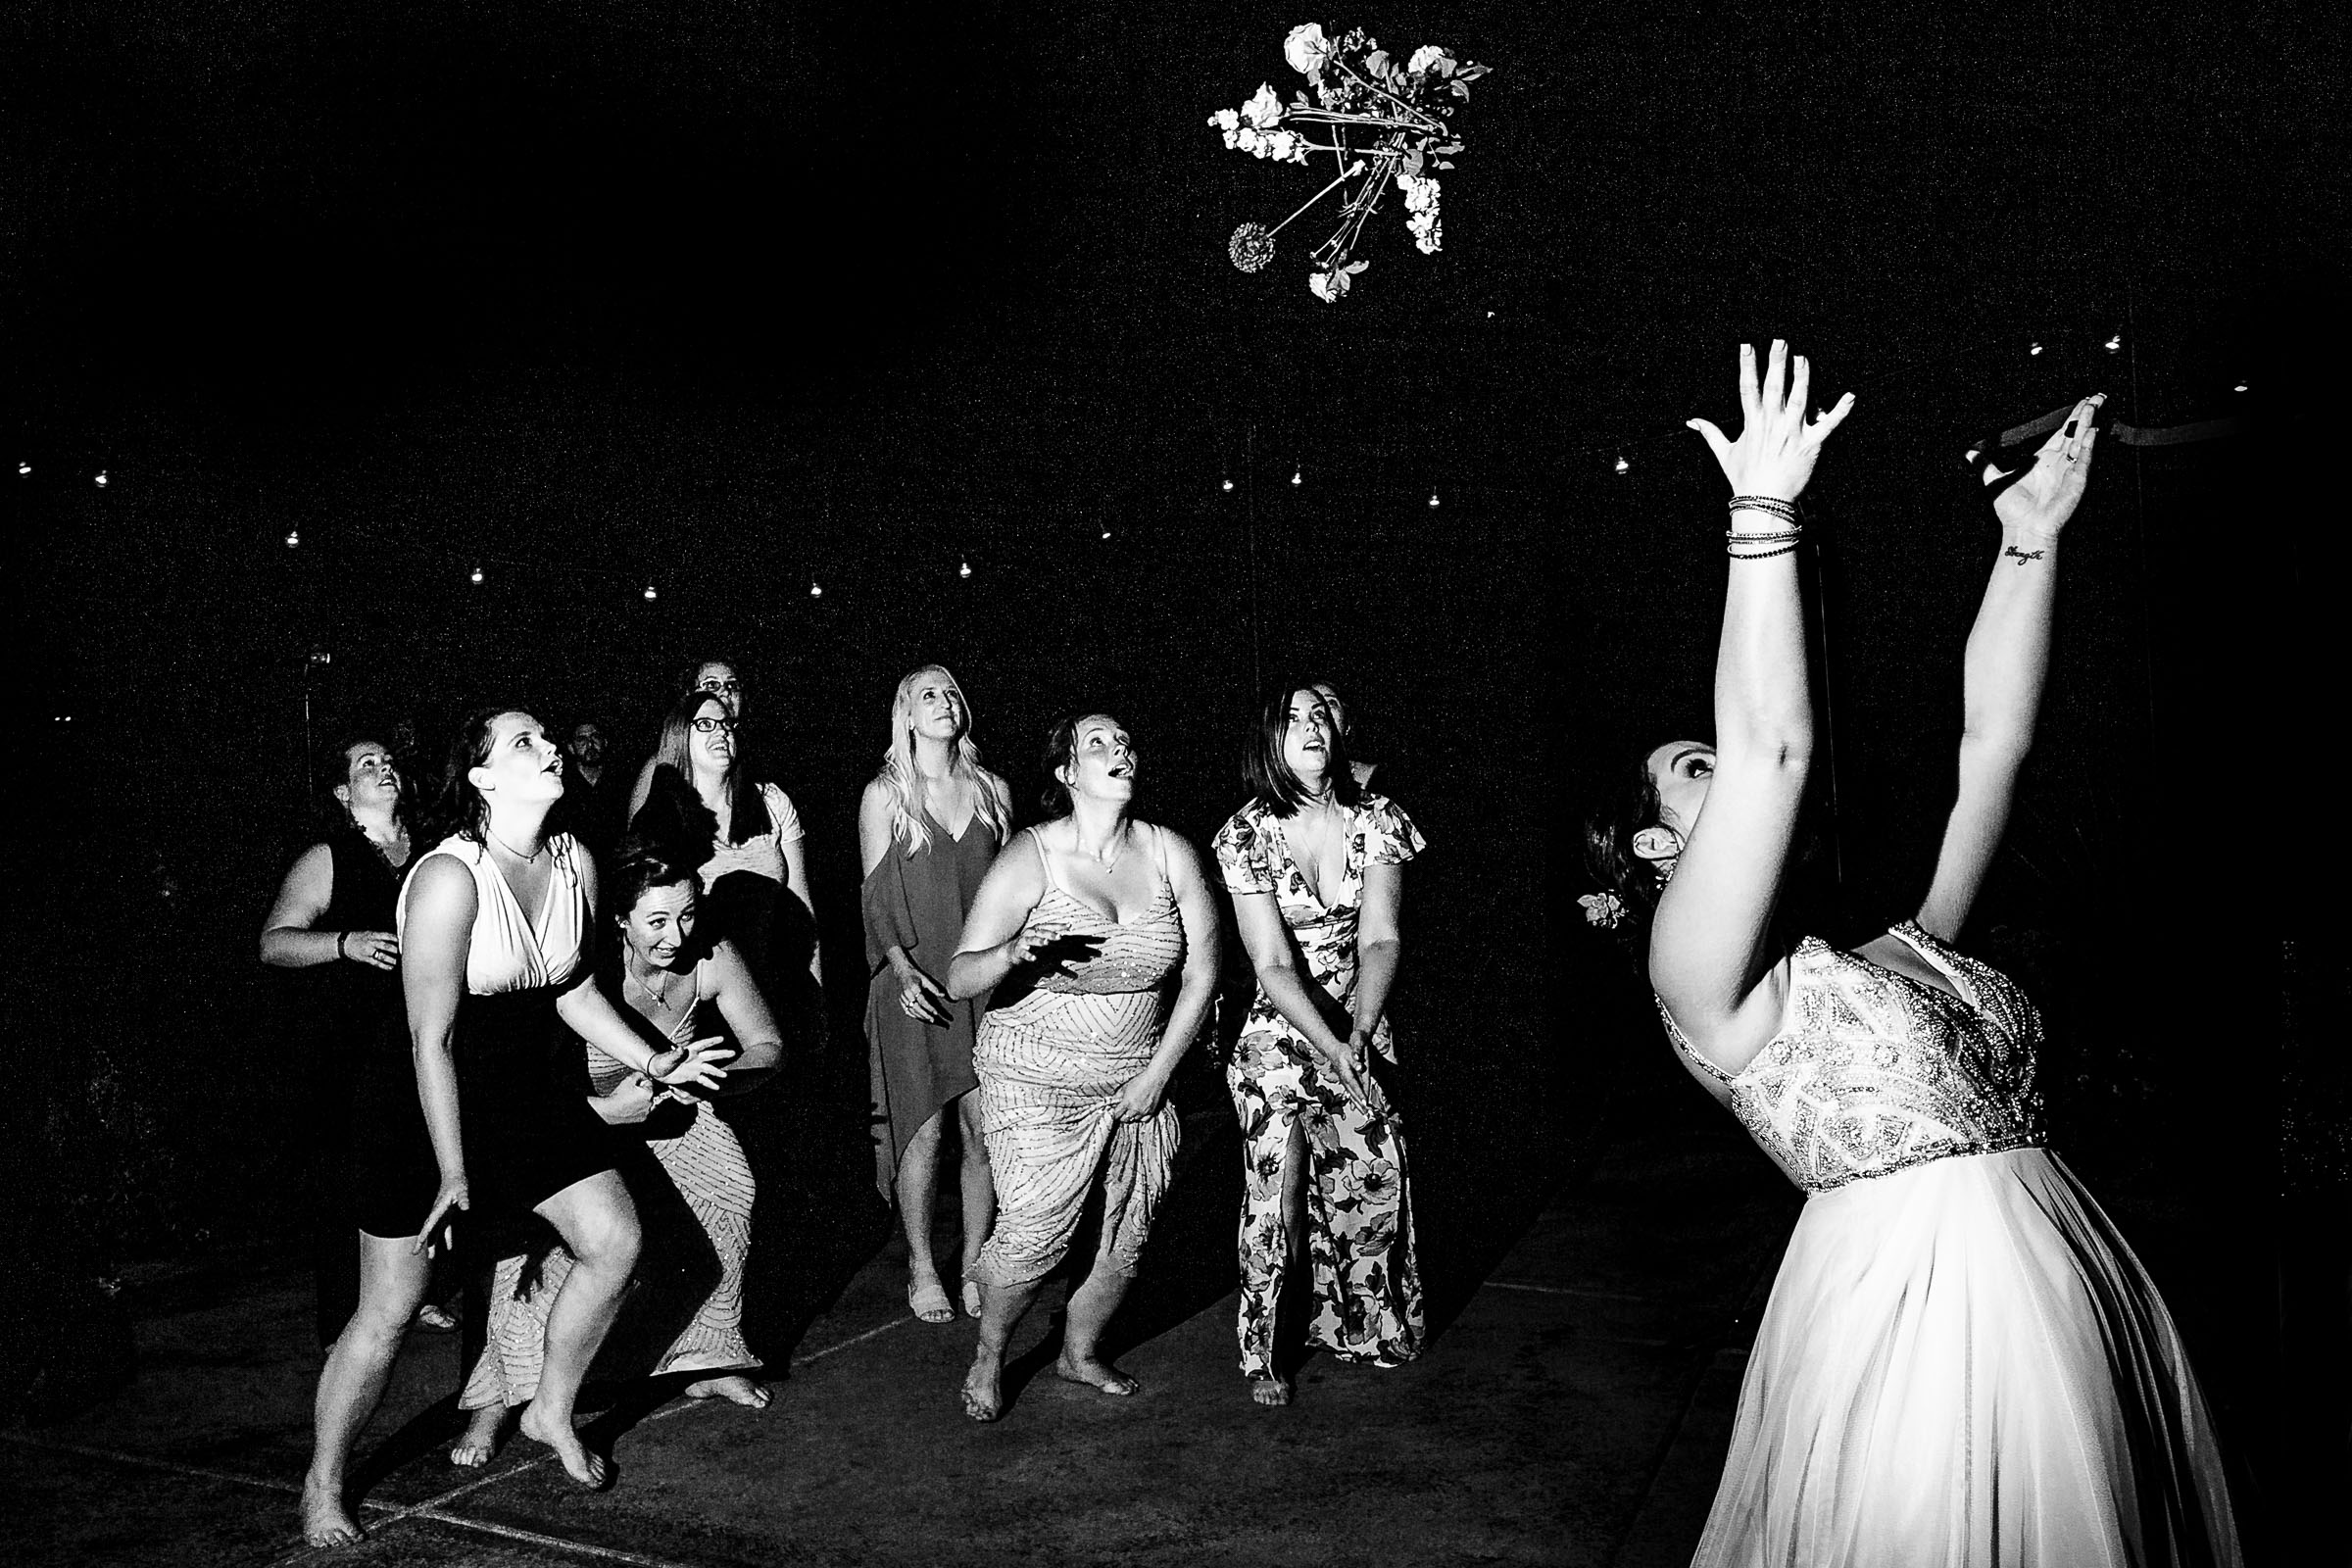 A fun photo of a bride throwing her bouquet during a Postlewait's Country wedding located in the heart of the Willamette Valley between Portland and Salem near Aurora, Oregon